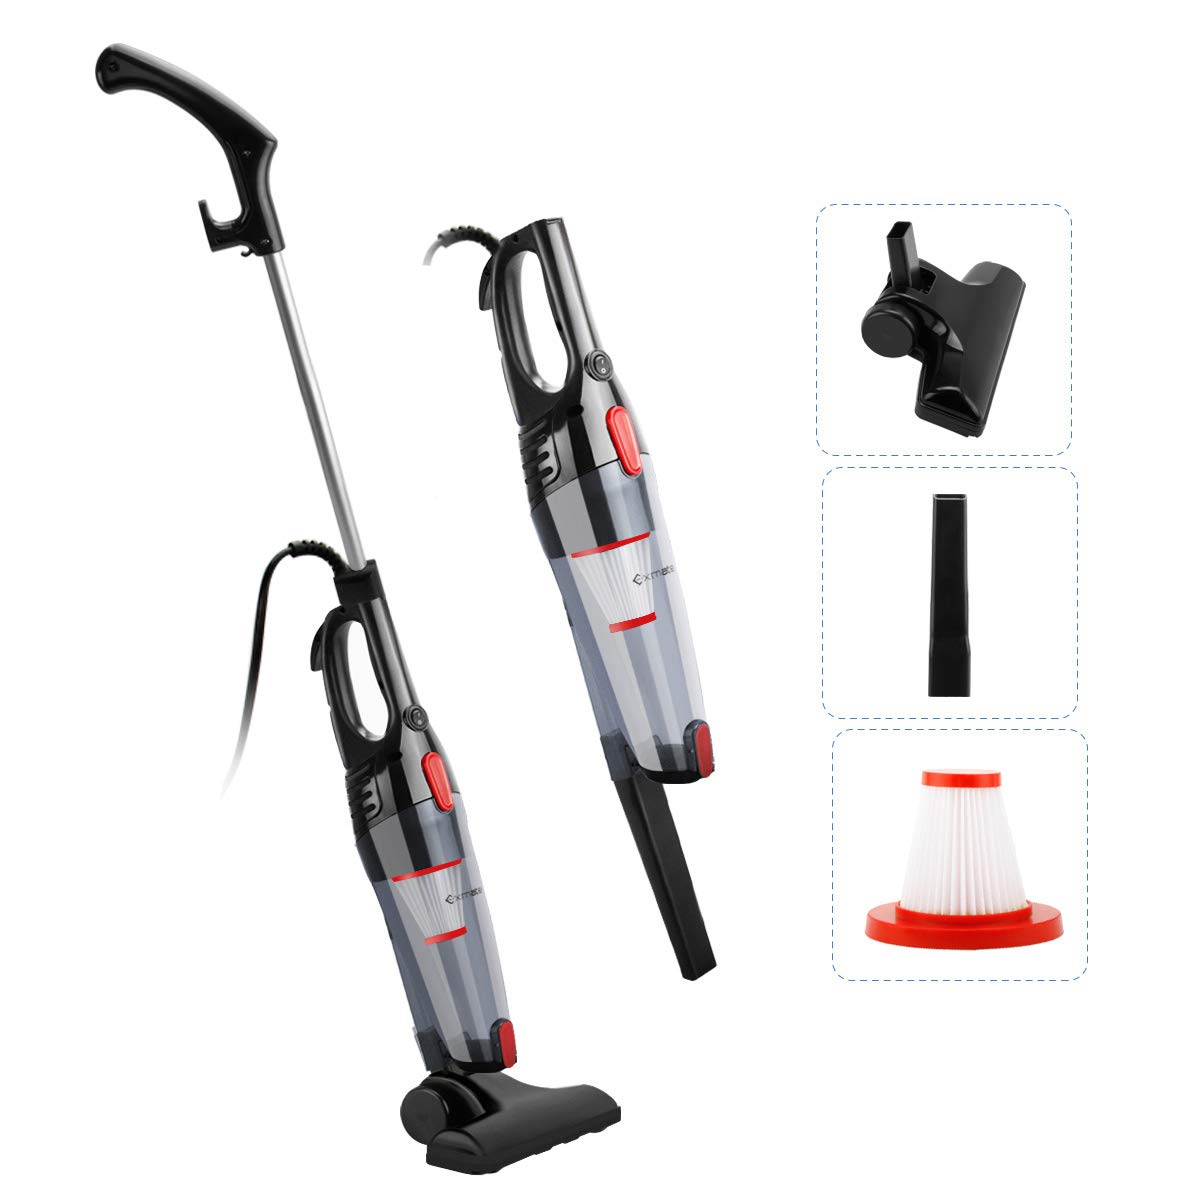 Exmate Vacuum Cleaner Corded Stick Vacuum 2 in 1 Handheld Vacuum, 800W 12KPa Upright Bagless Vac, Ultra Lightweight with HEPA Filter and Crevice Tool, Versatile for Carpet Hard Floor Pet Hair Cleaning